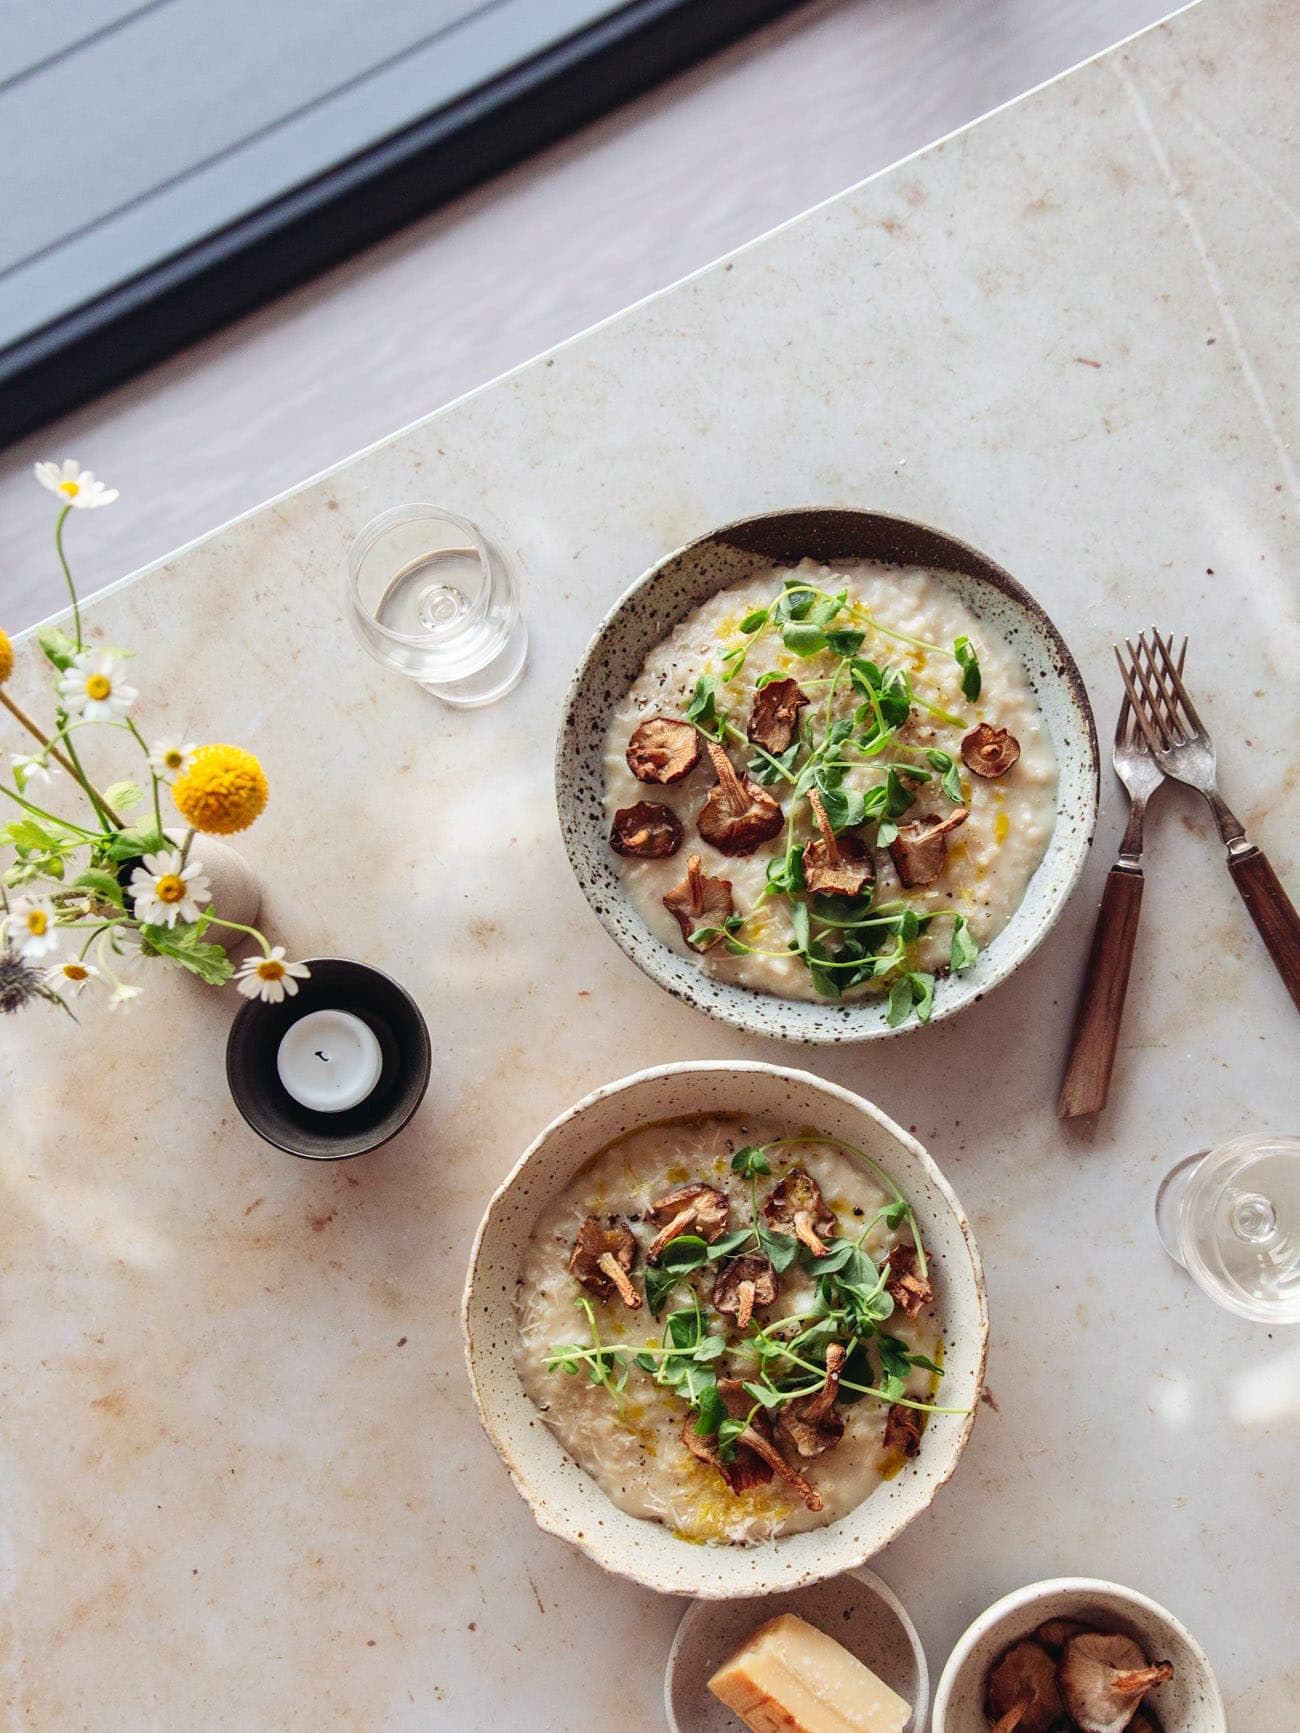 Celeriac Risotto with Roasted Mushrooms by Izy Hossack